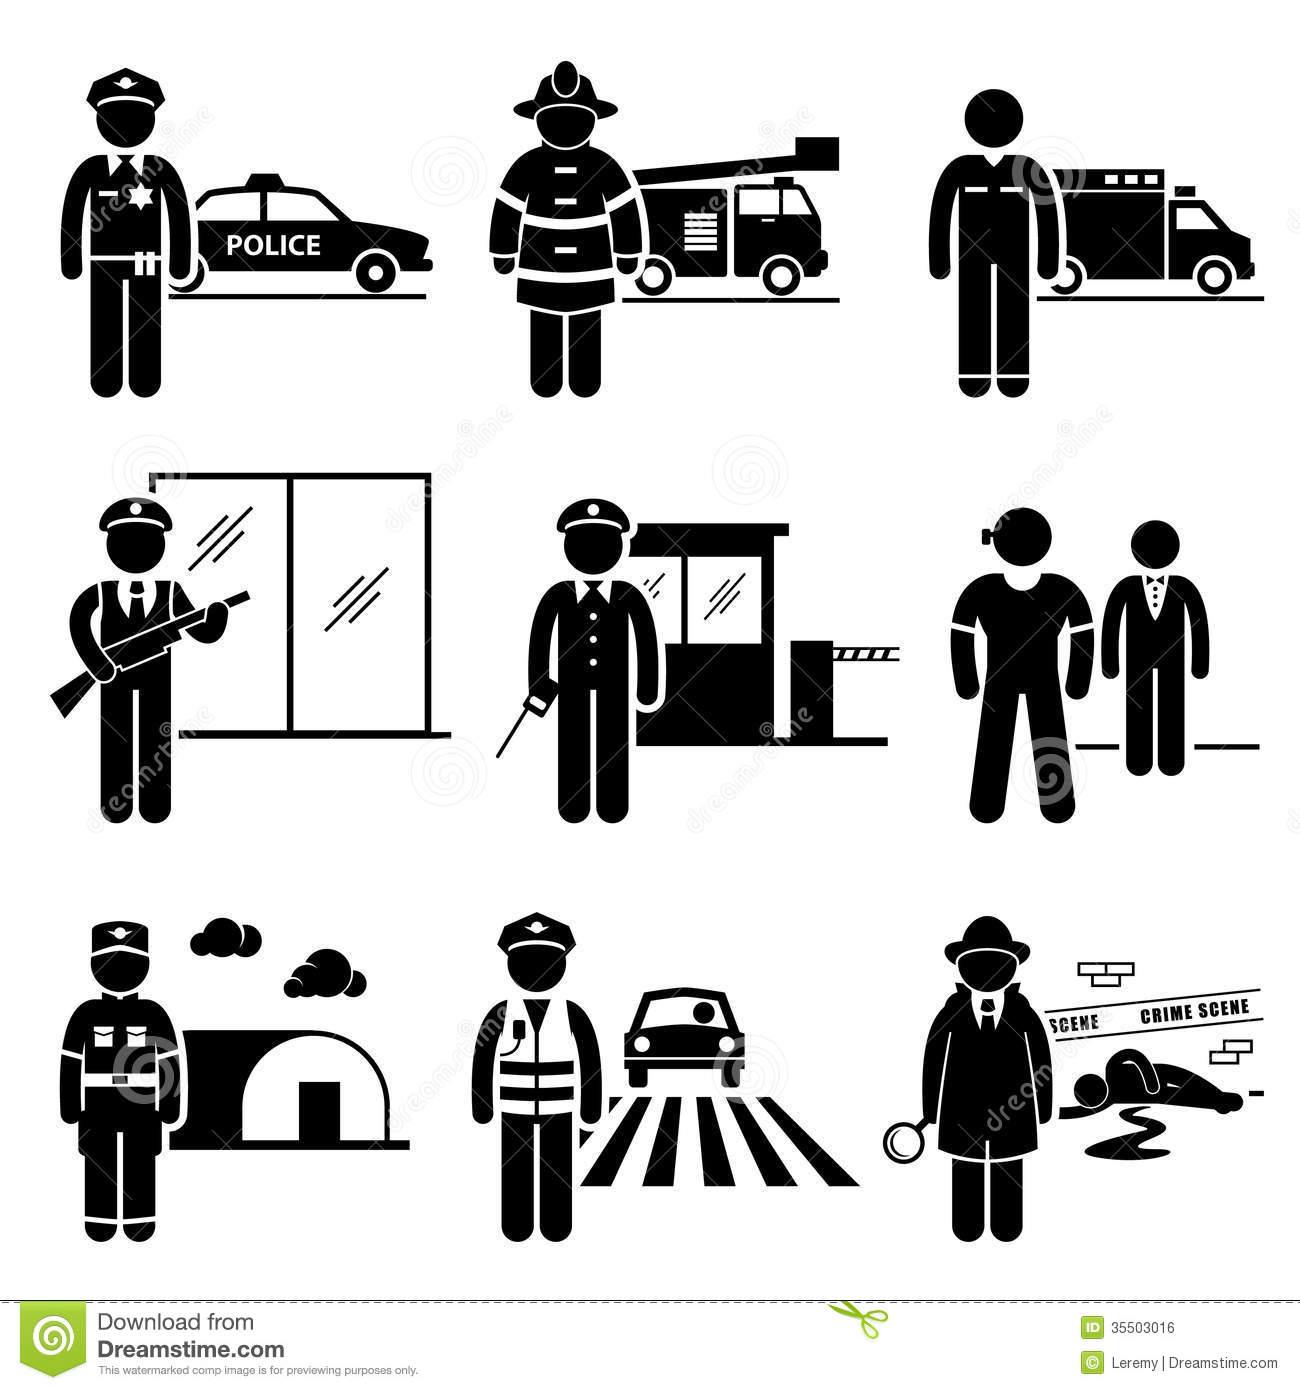 hight resolution of safety clipart public safety stock illustrations vectors dreamstime royalty free